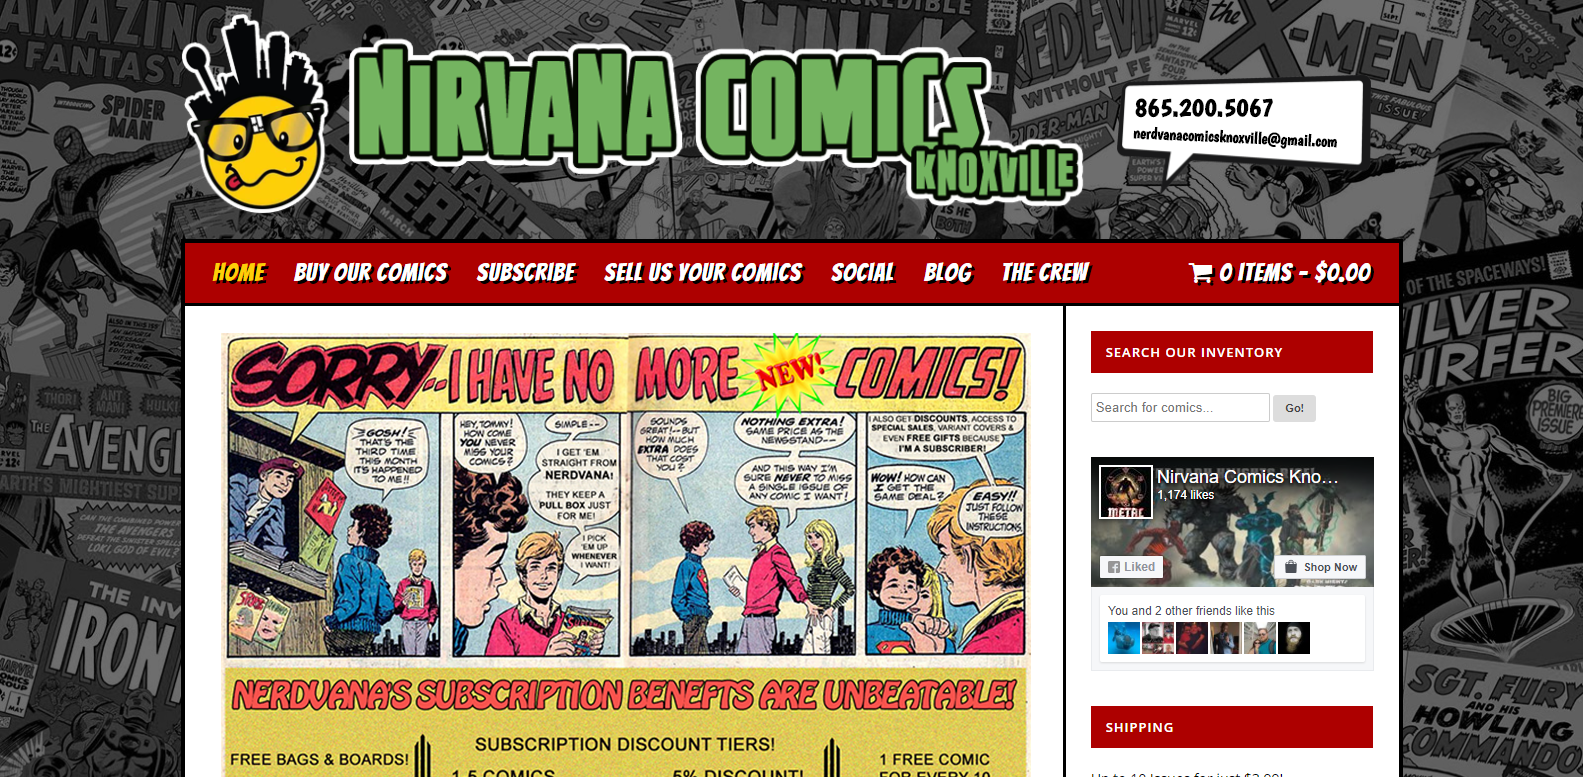 Nirvana Comics Knoxville<div style='clear:both;width:100%;height:0px;'></div><span class='cat'>Individual/Group, Small Business</span>